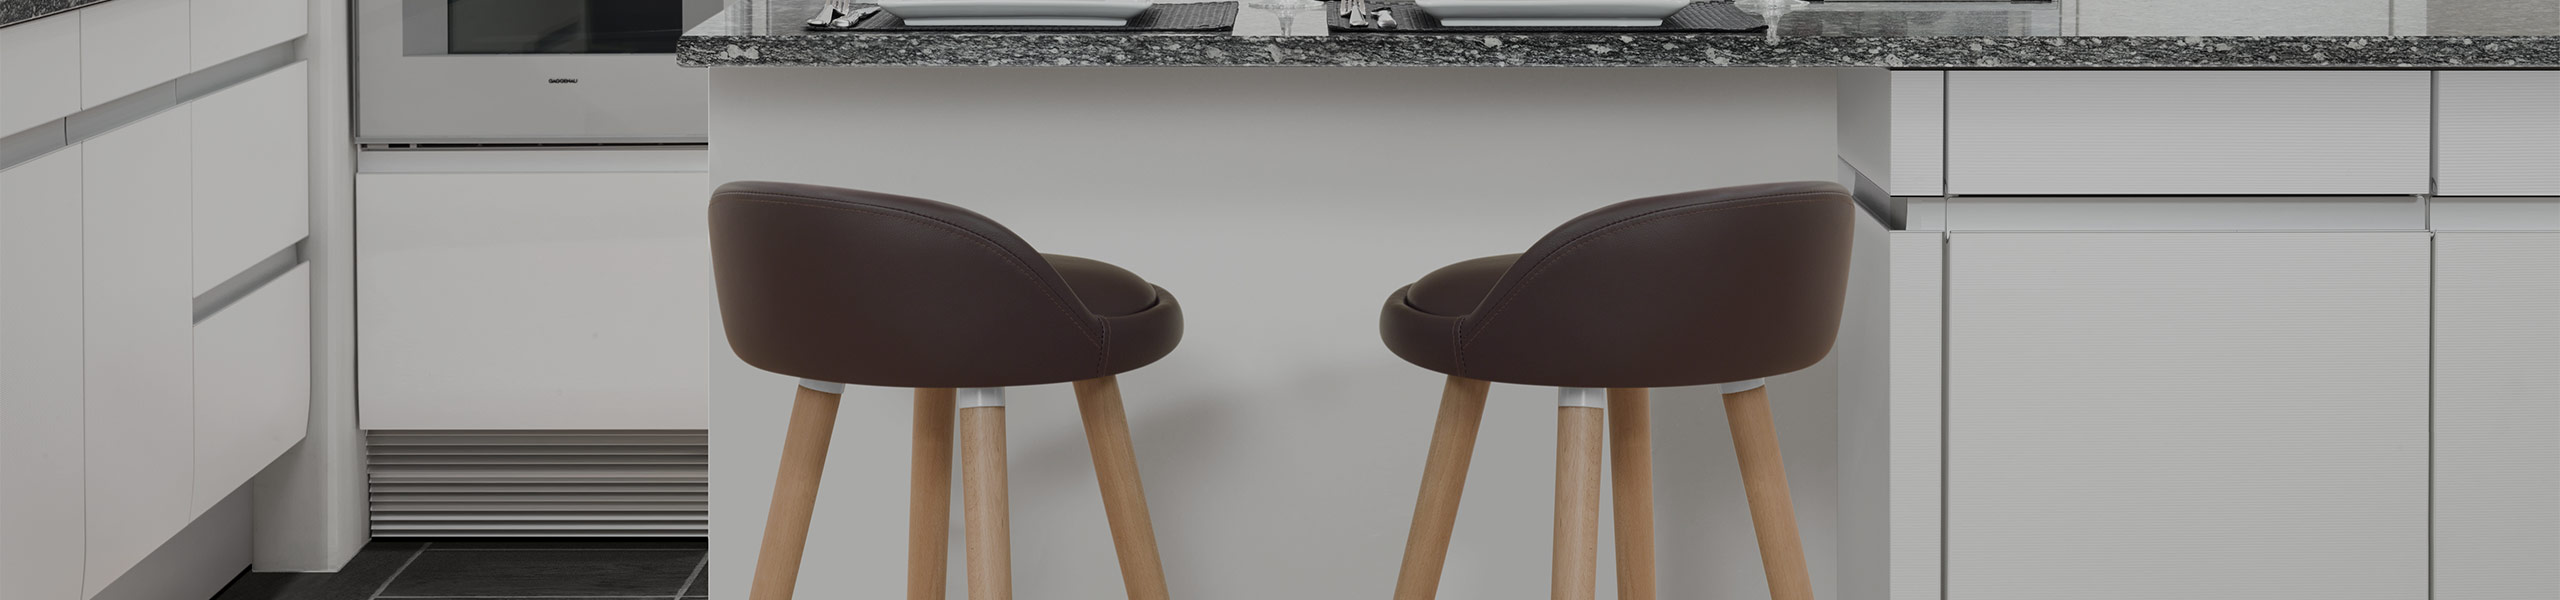 Jive Wooden Stool Brown Video Banner